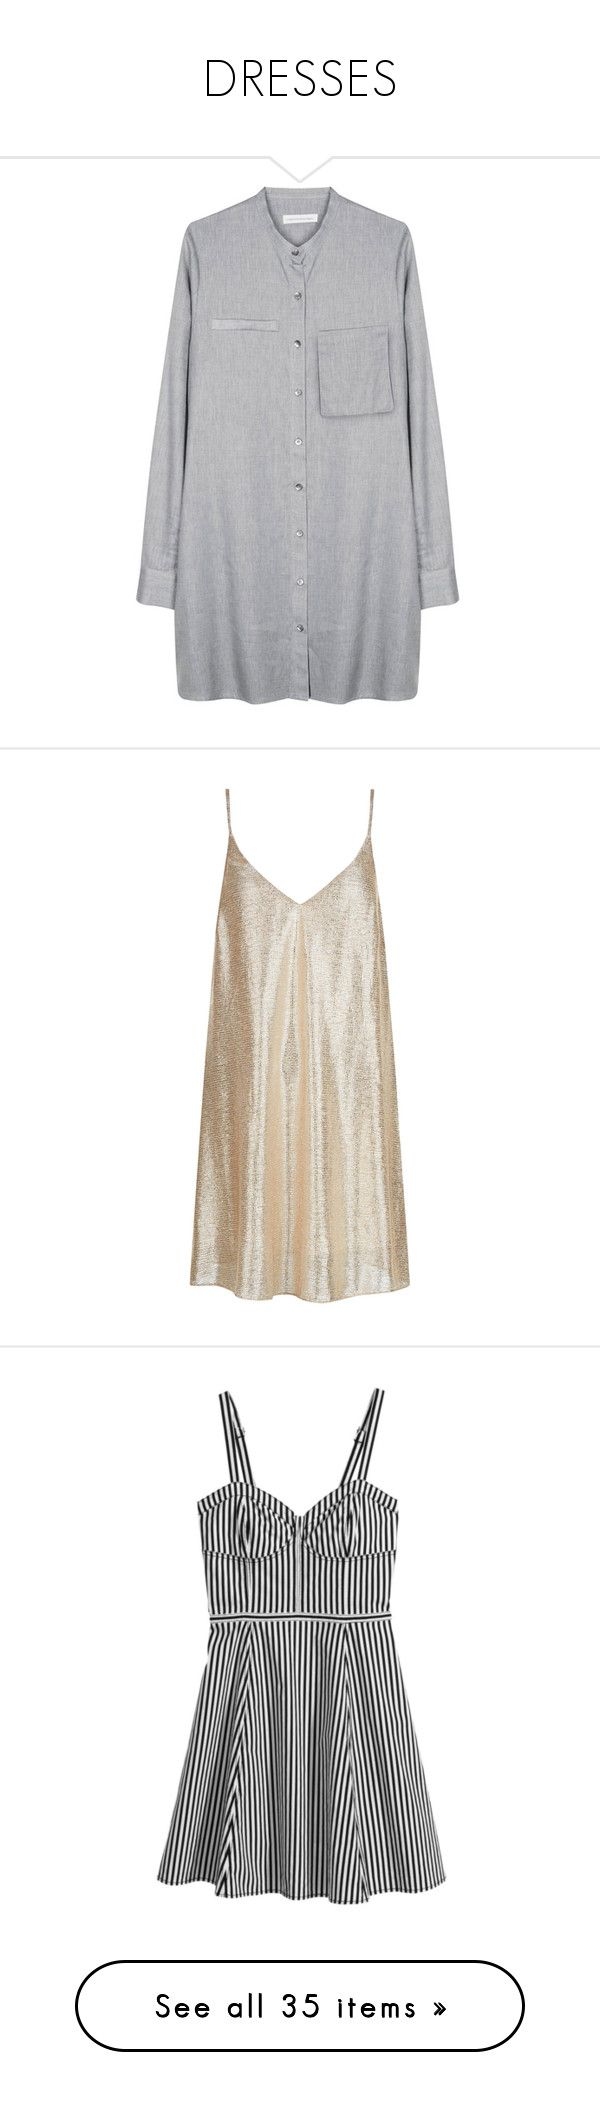 """""""DRESSES"""" by janeorlova ❤ liked on Polyvore featuring tops, tunics, dresses, shirts, shirt tops, smocked tunic, smock top, christopher esber, smocked top and gold"""